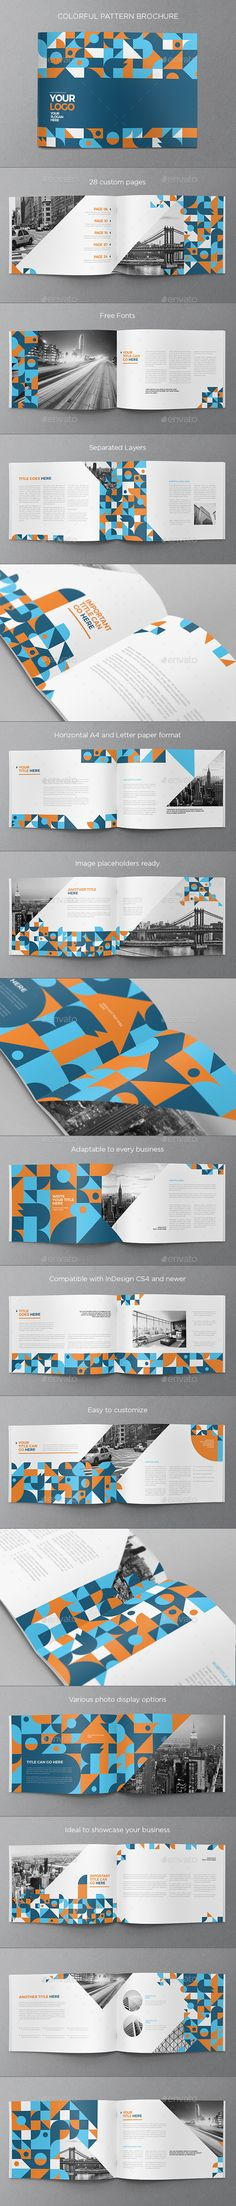 Colorful Pattern Brochure Template InDesign INDD - 28 Custom Pages